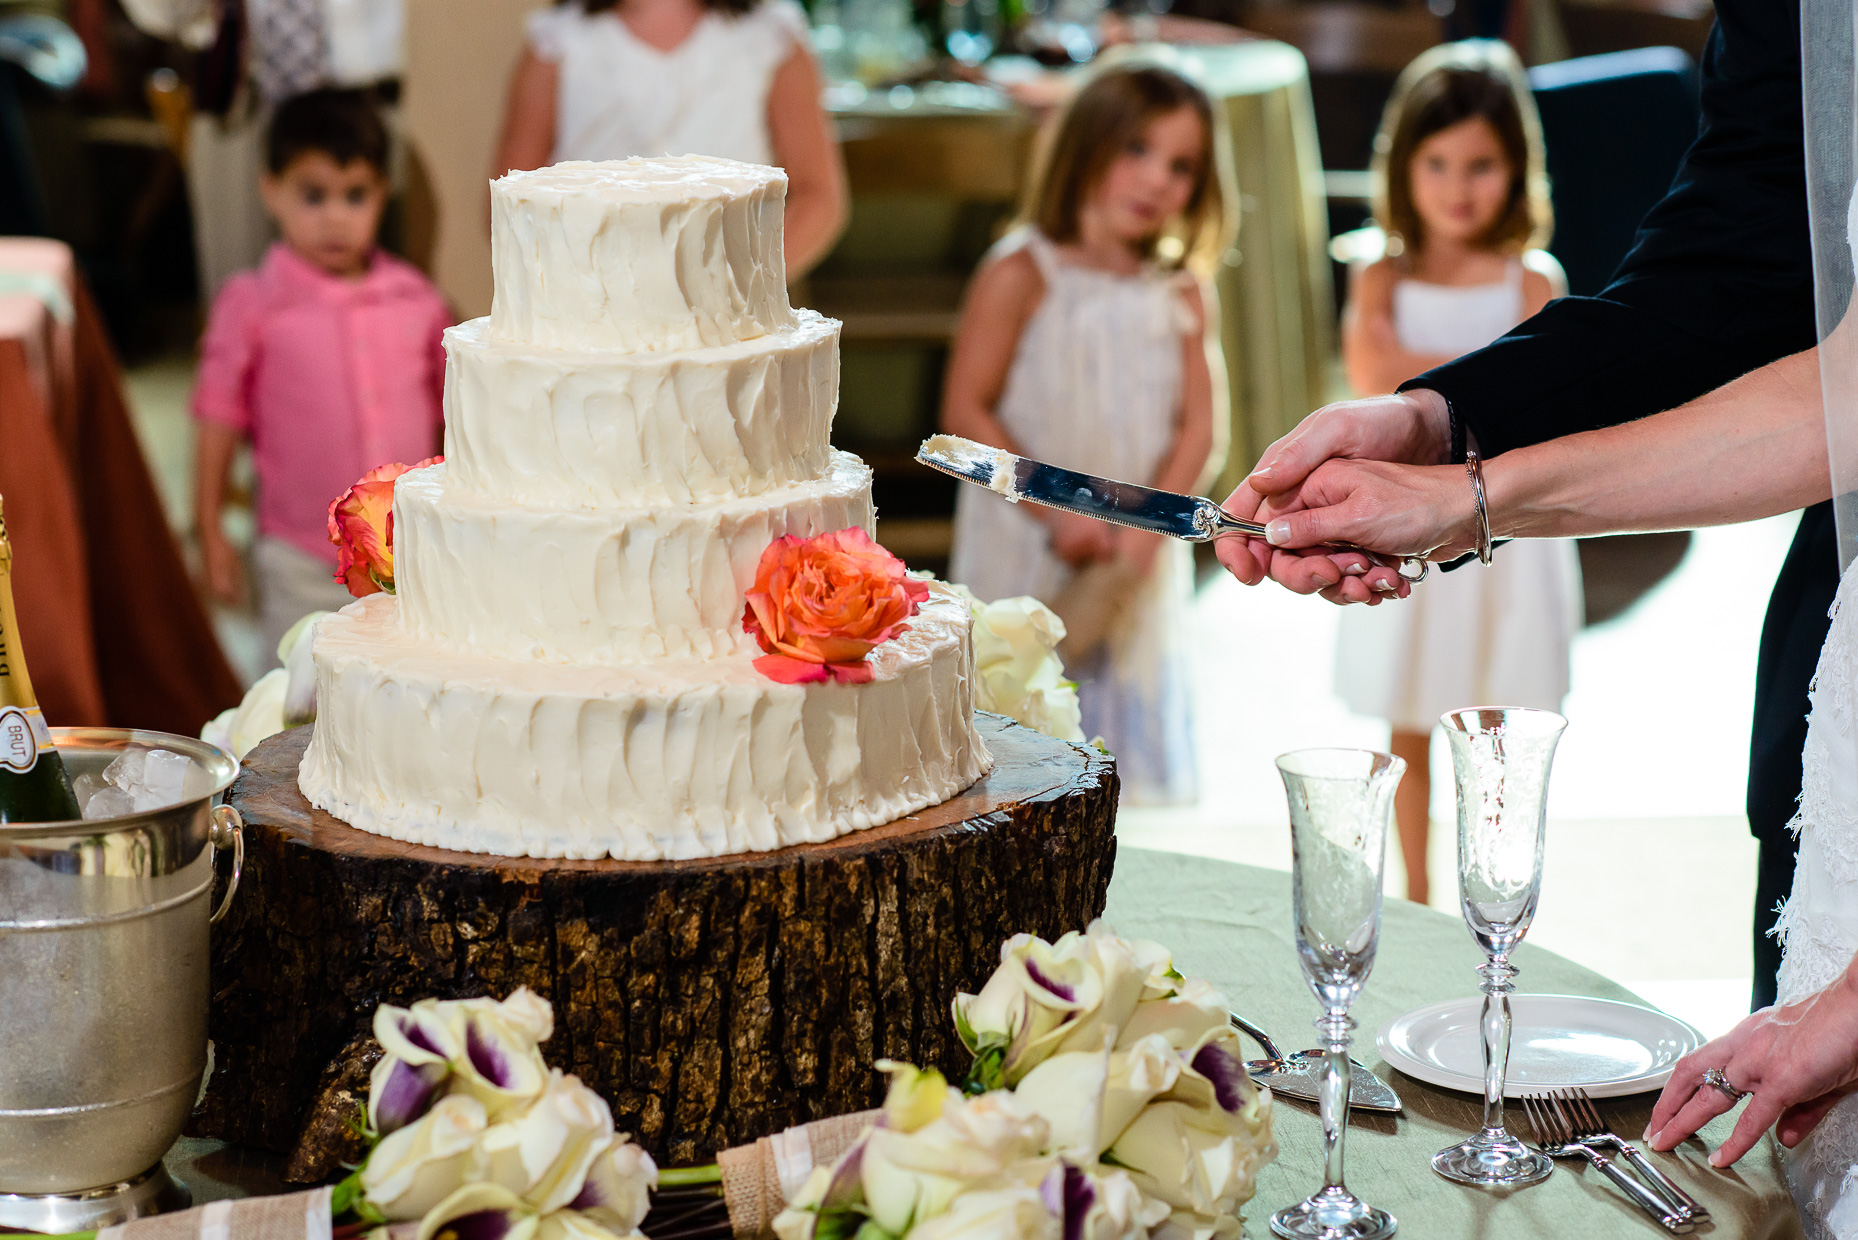 Austin-Wedding-Photographer-cake-cutting-children-knife